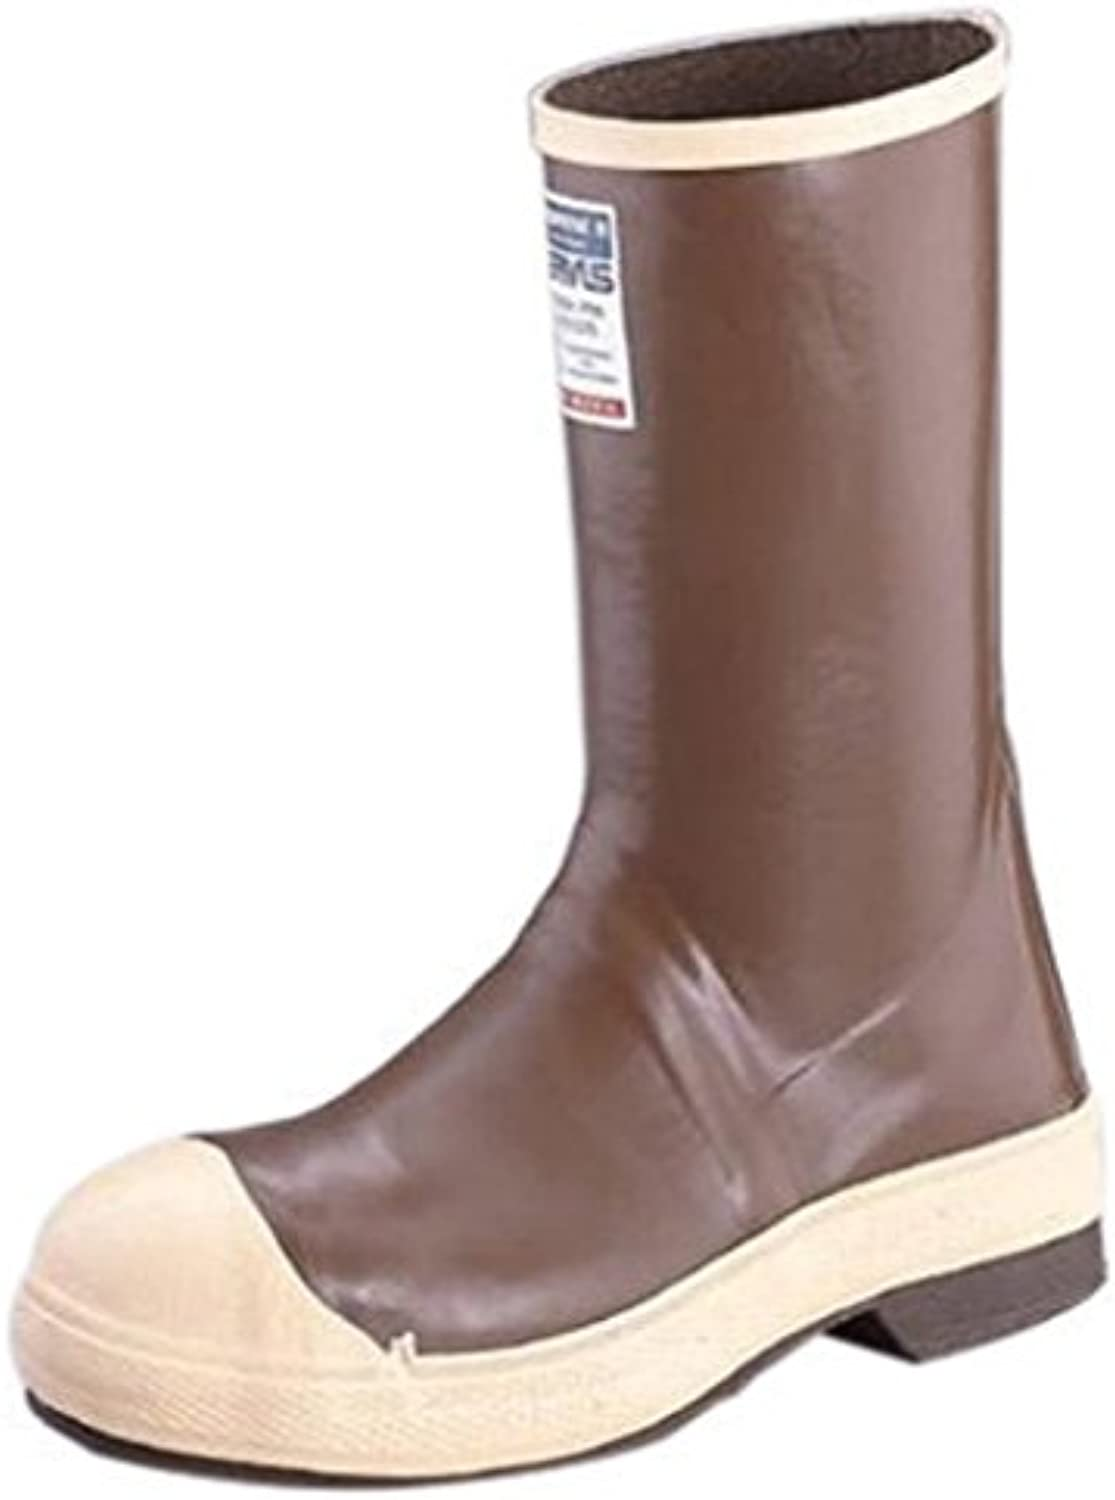 Servus 22148-13 By Honeywell Size 13 Neoprene III Copper Tan 12  Neoprene Boots With Neo-Grip Outsole, Steel Toe And Breathe-O-Prene Removable Insole (1 PR)